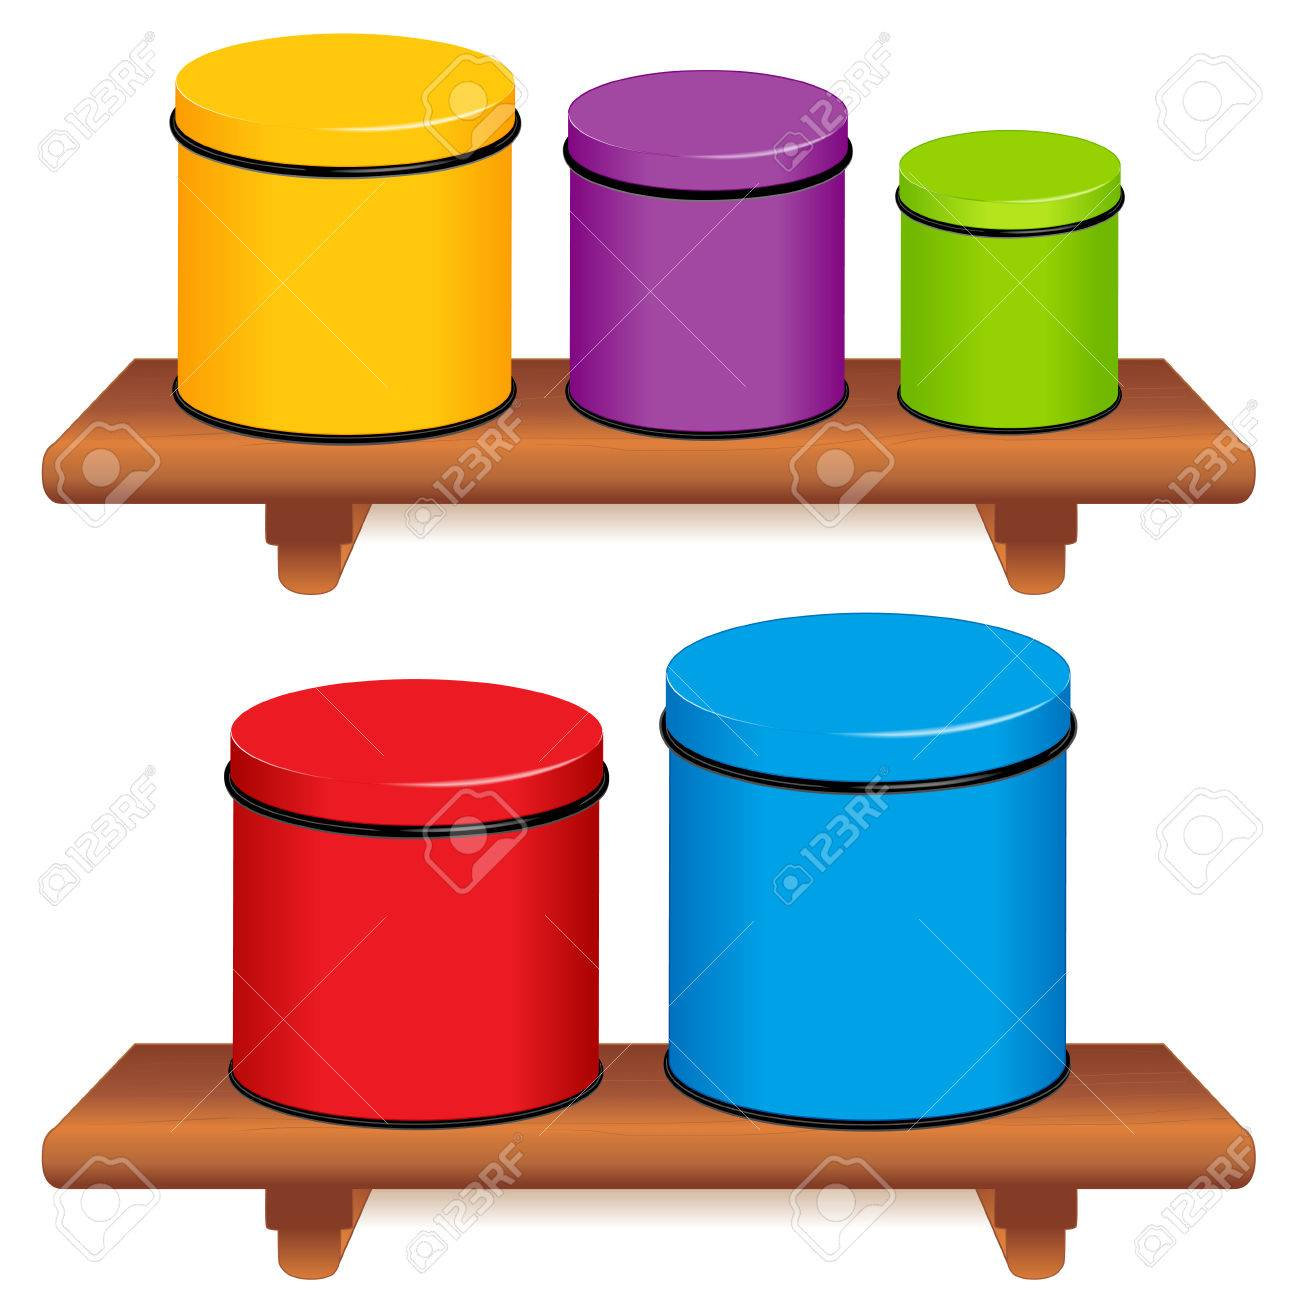 Colorful Kitchen Canisters Sets kitchen canister set, five multi color food storage containers